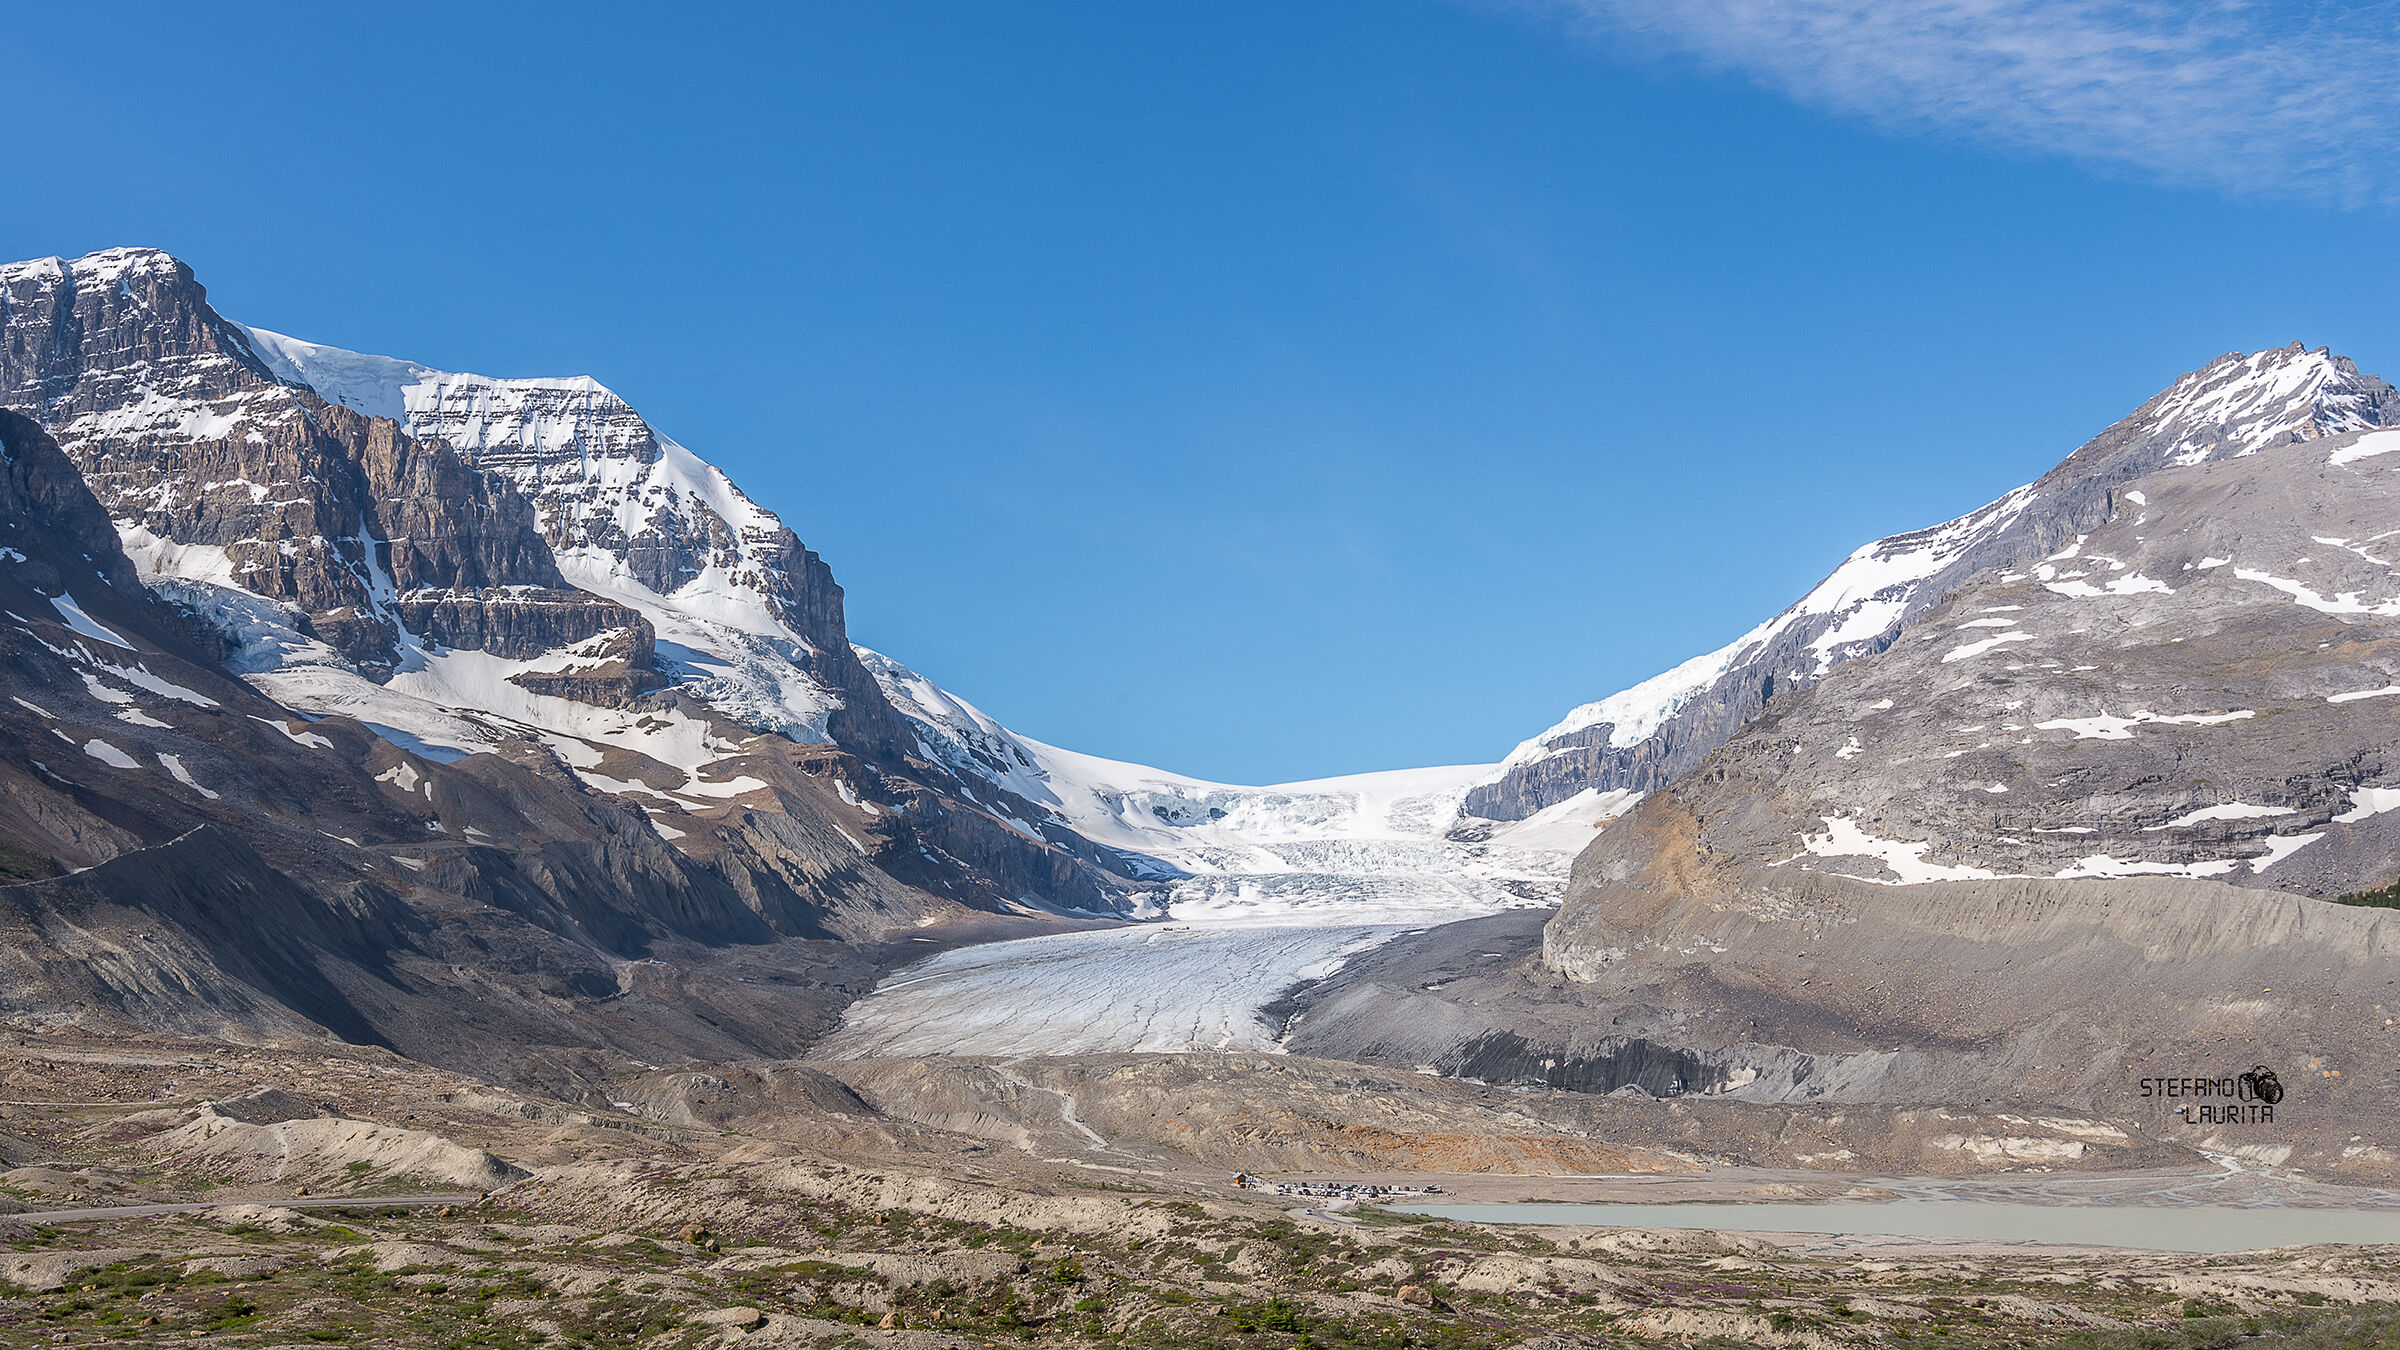 The majesty of Athabasca Glacier...